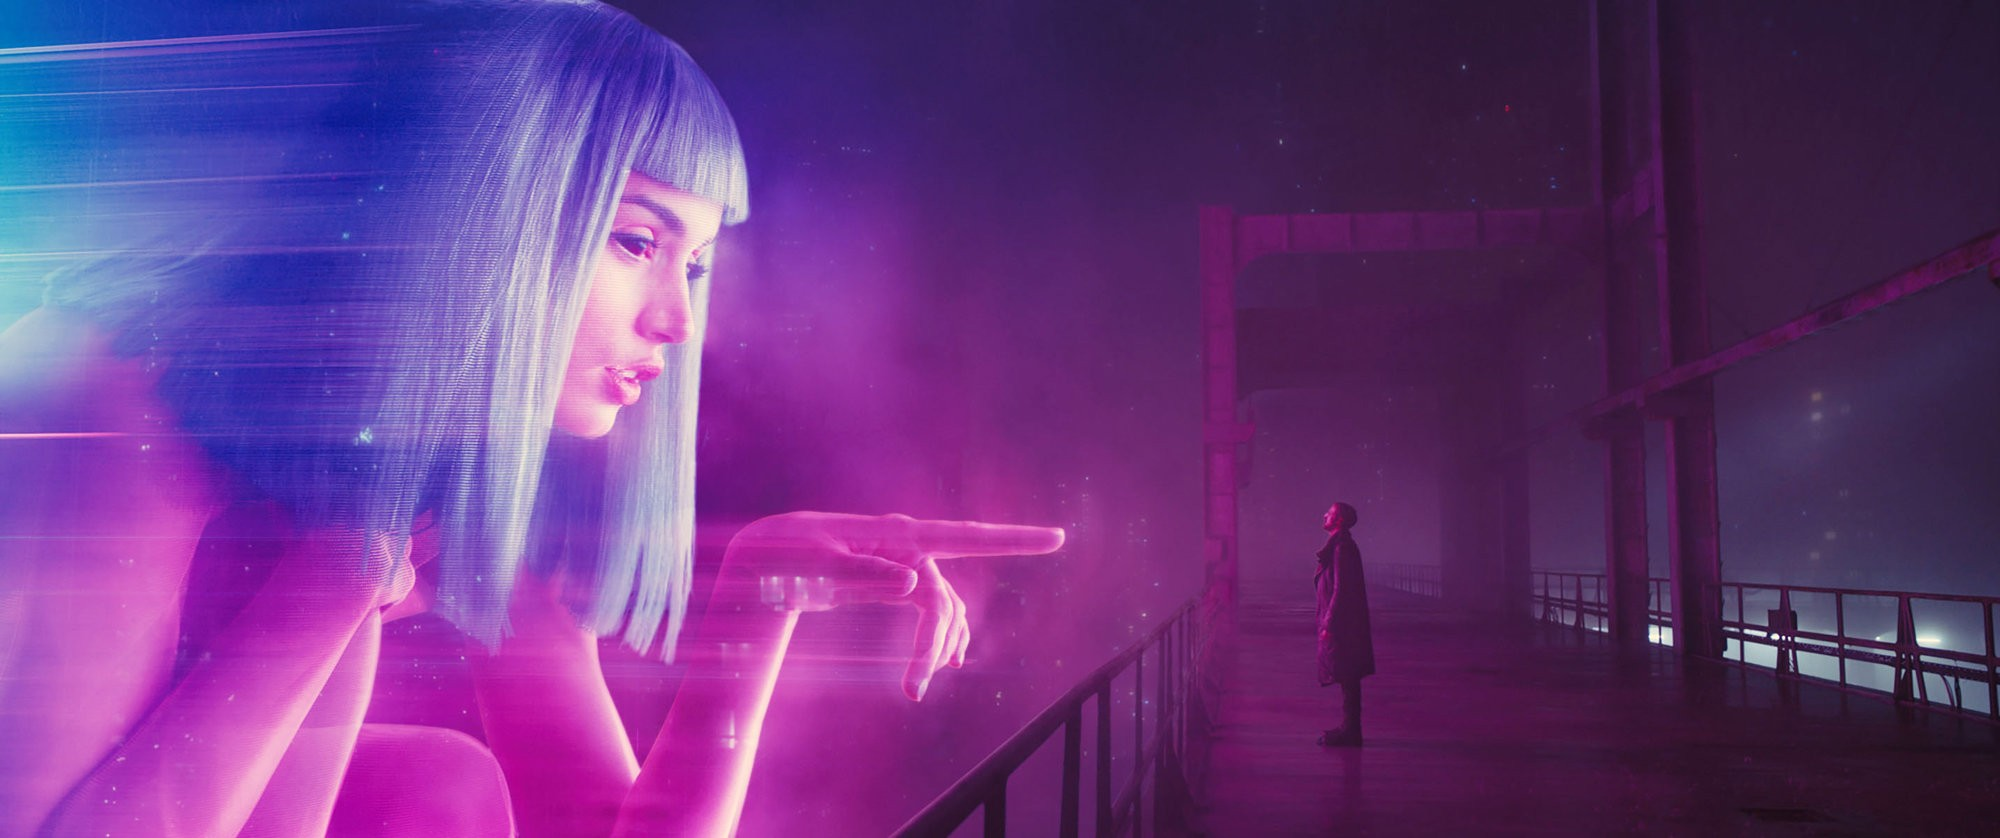 Large blade runner 2049 st 31 jpg sd high  2016 alcon entertainment llc all rights reserved